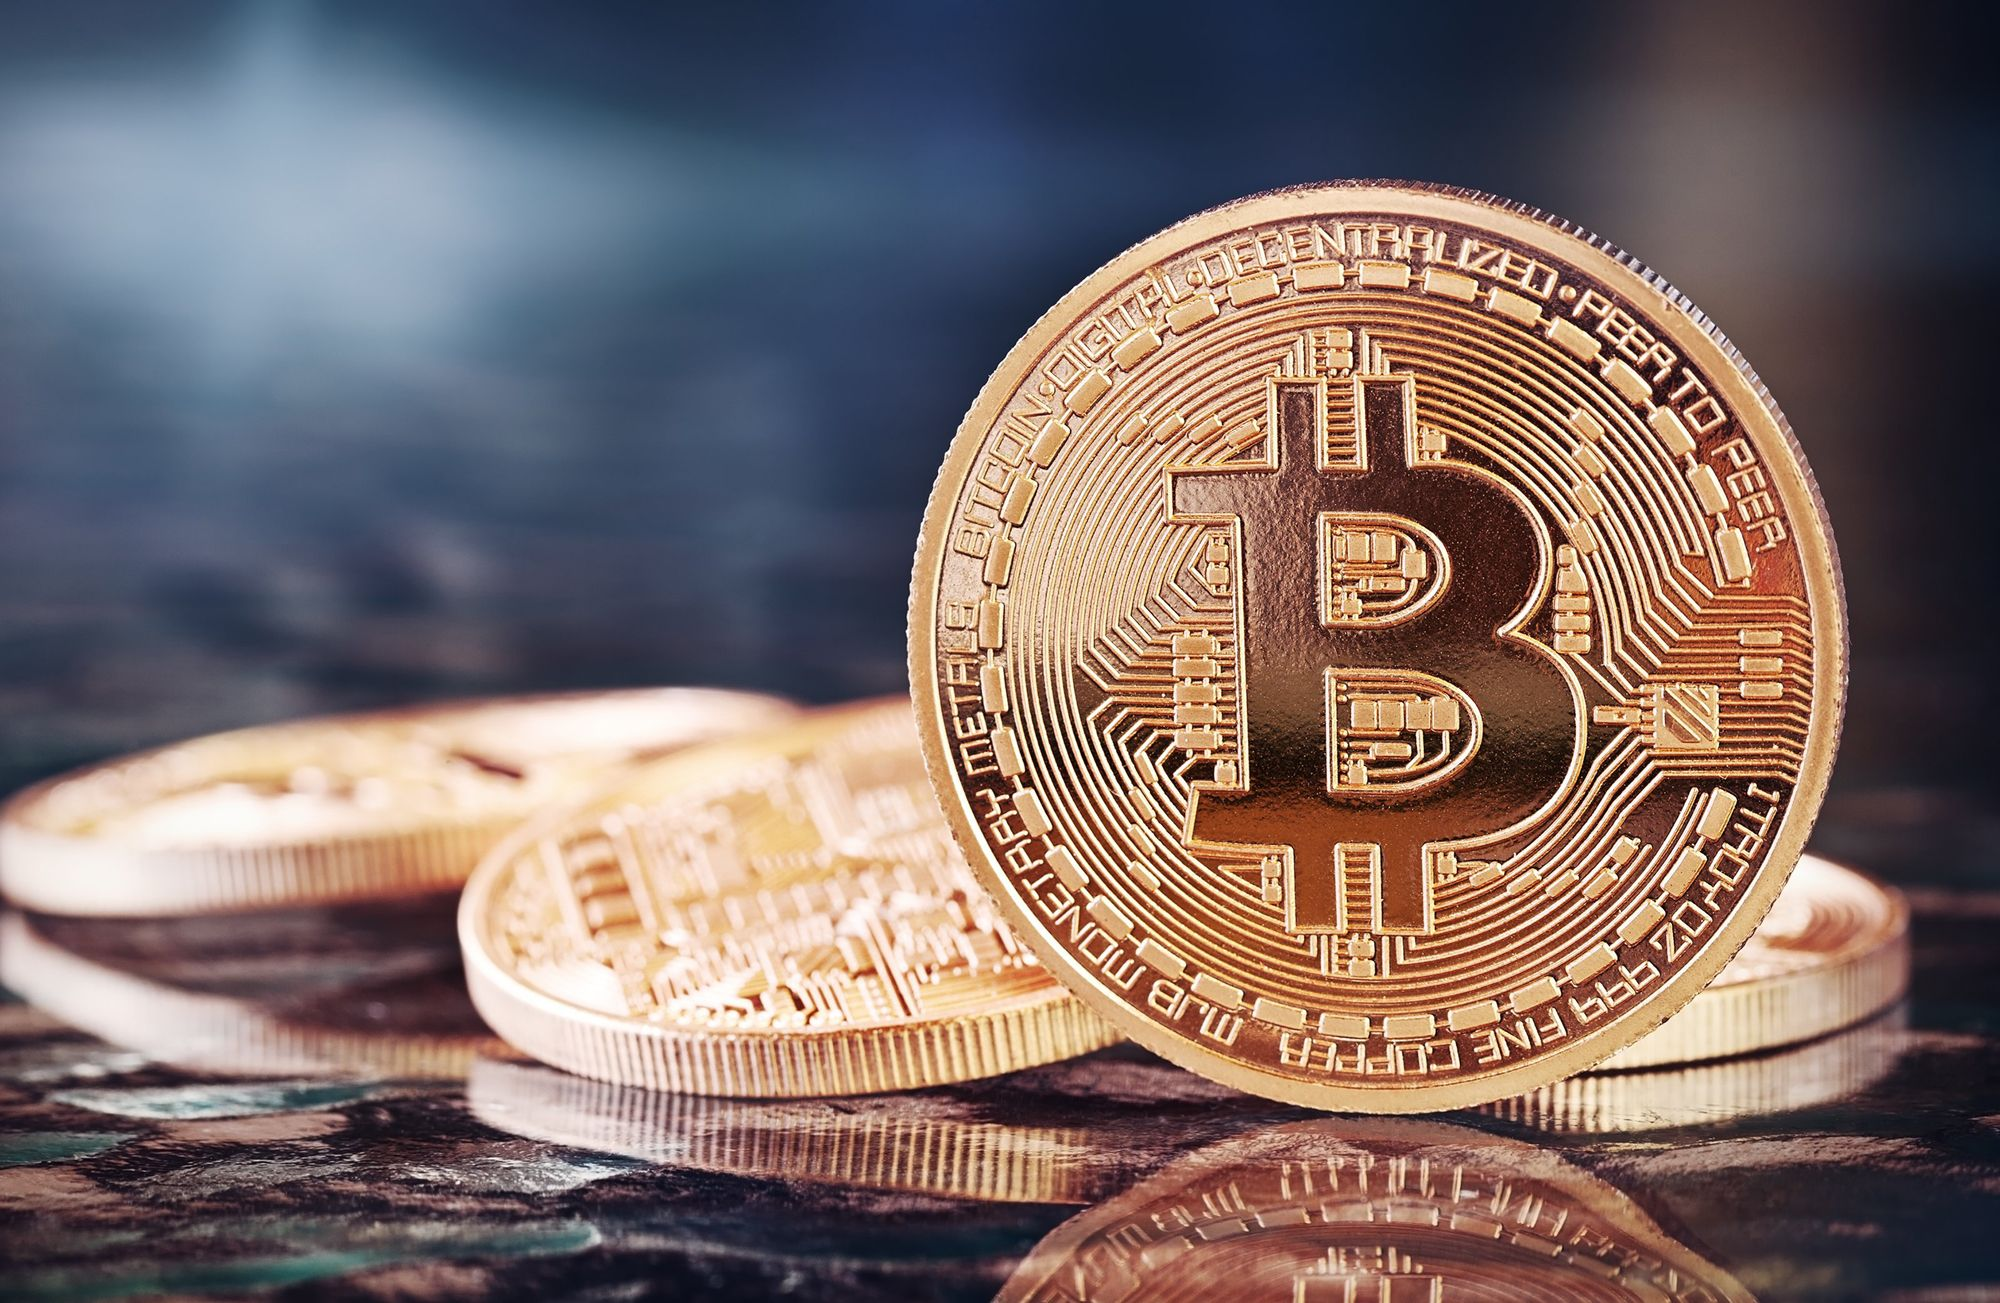 5 Cryptocurrencies To Know About (That Isn't Bitcoin)